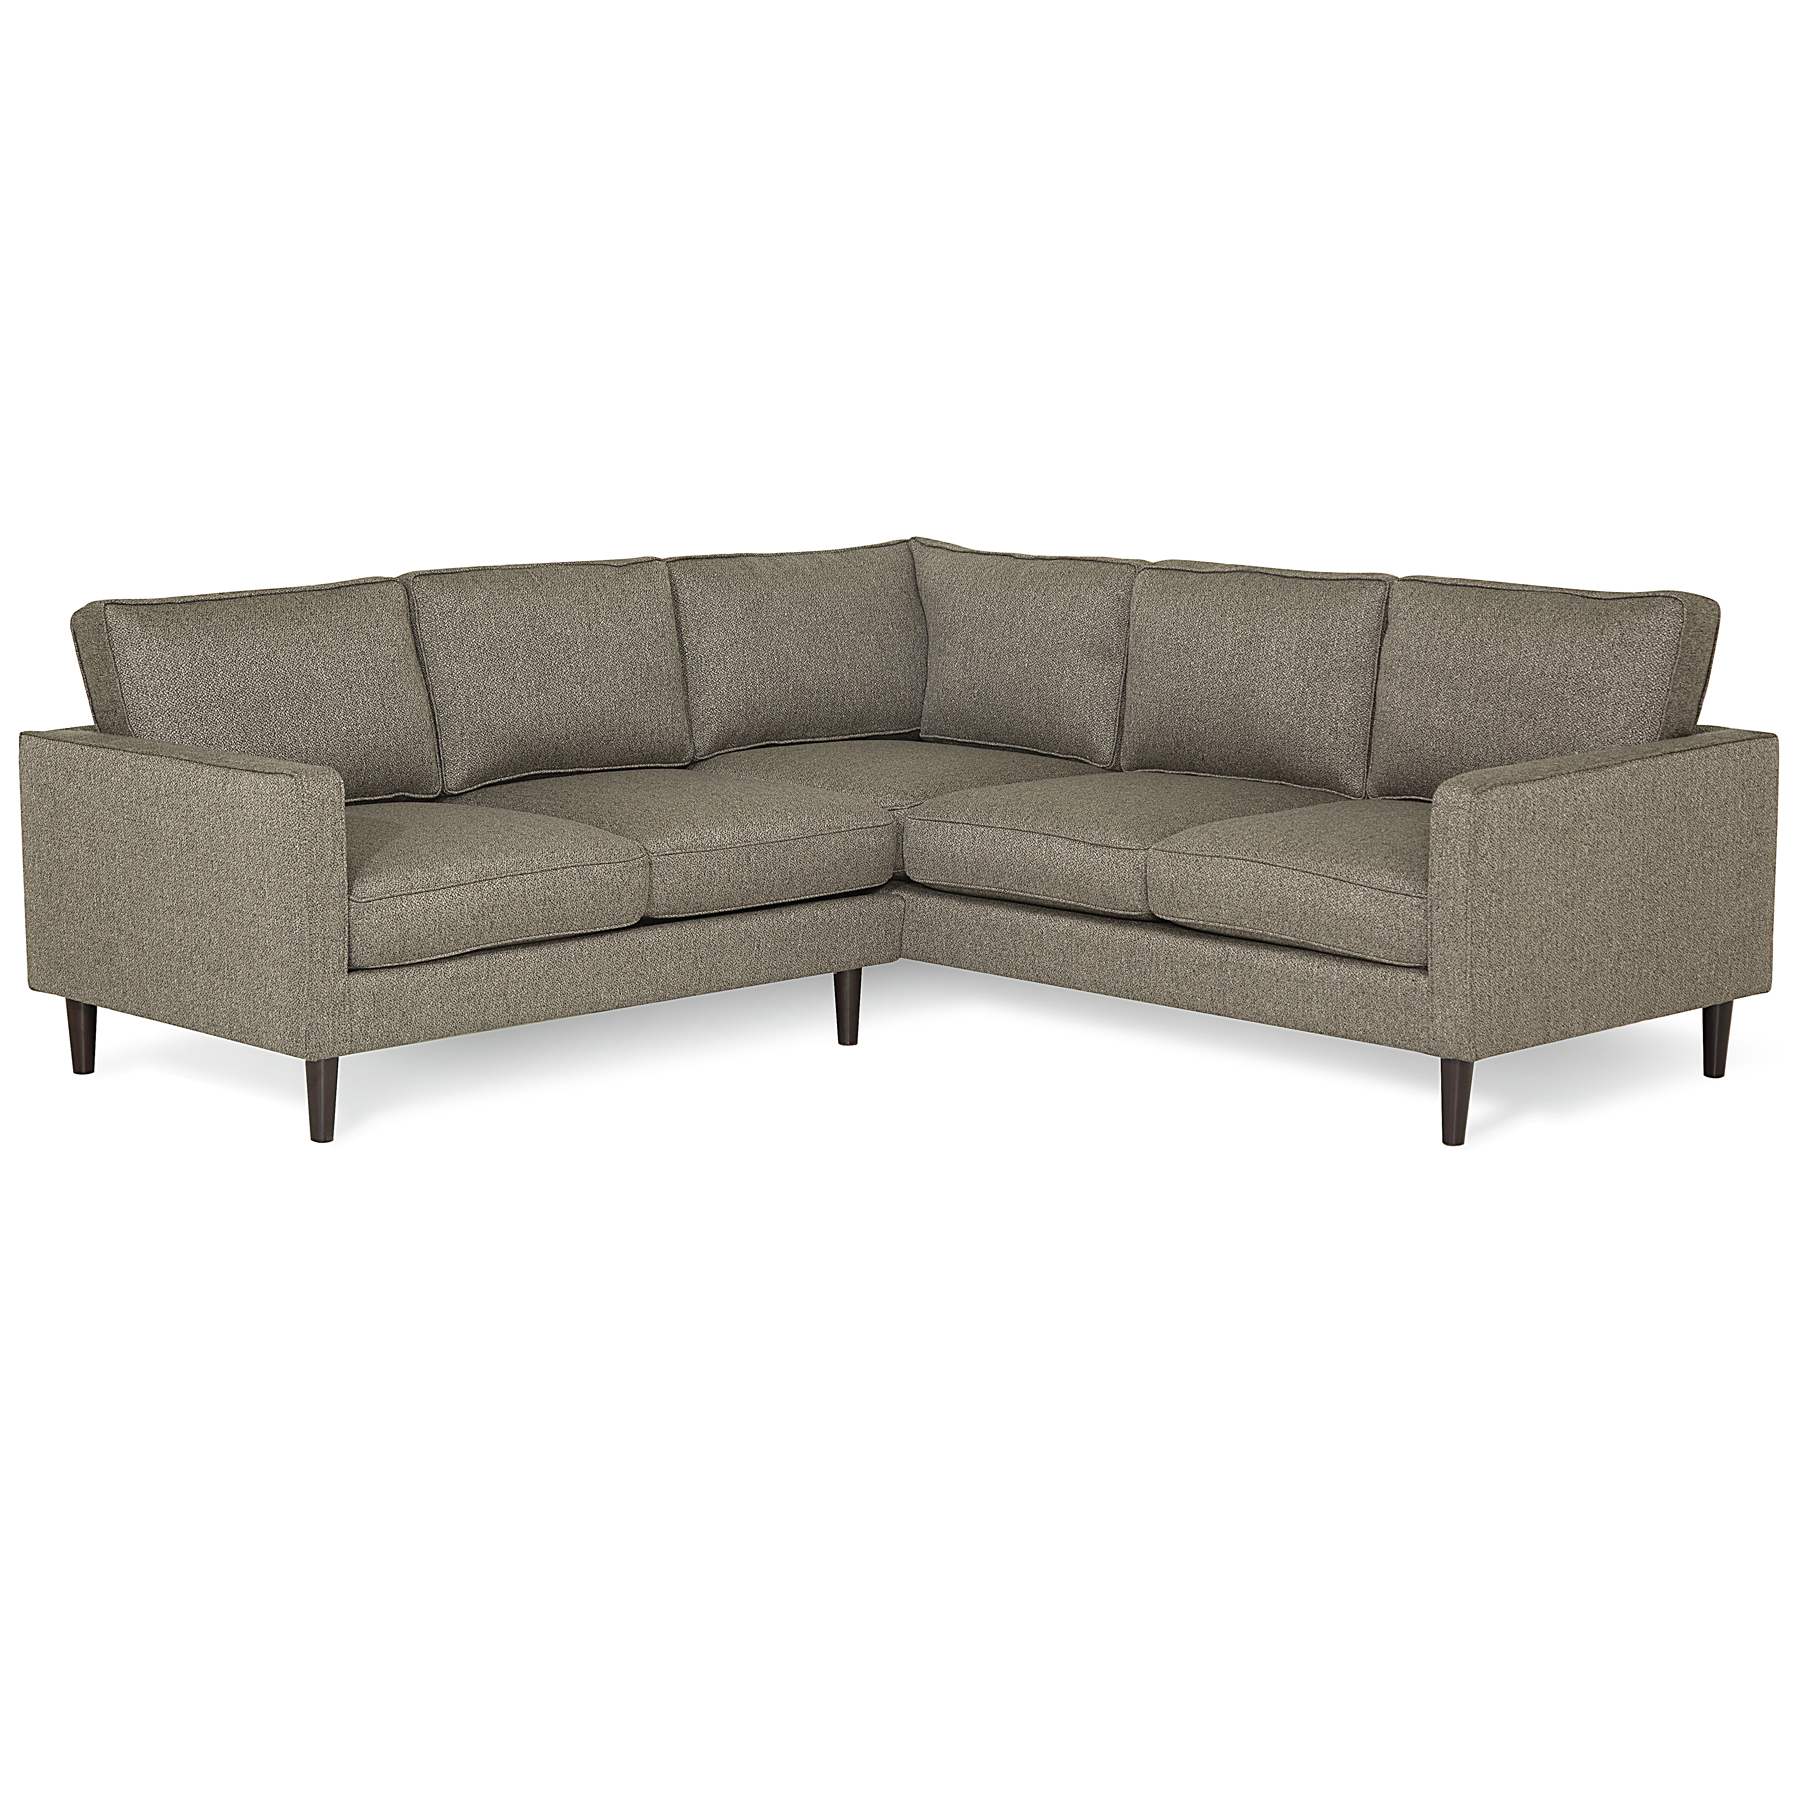 Swell Brandon Sectional 150 Fabrics Sofas And Sectionals Alphanode Cool Chair Designs And Ideas Alphanodeonline